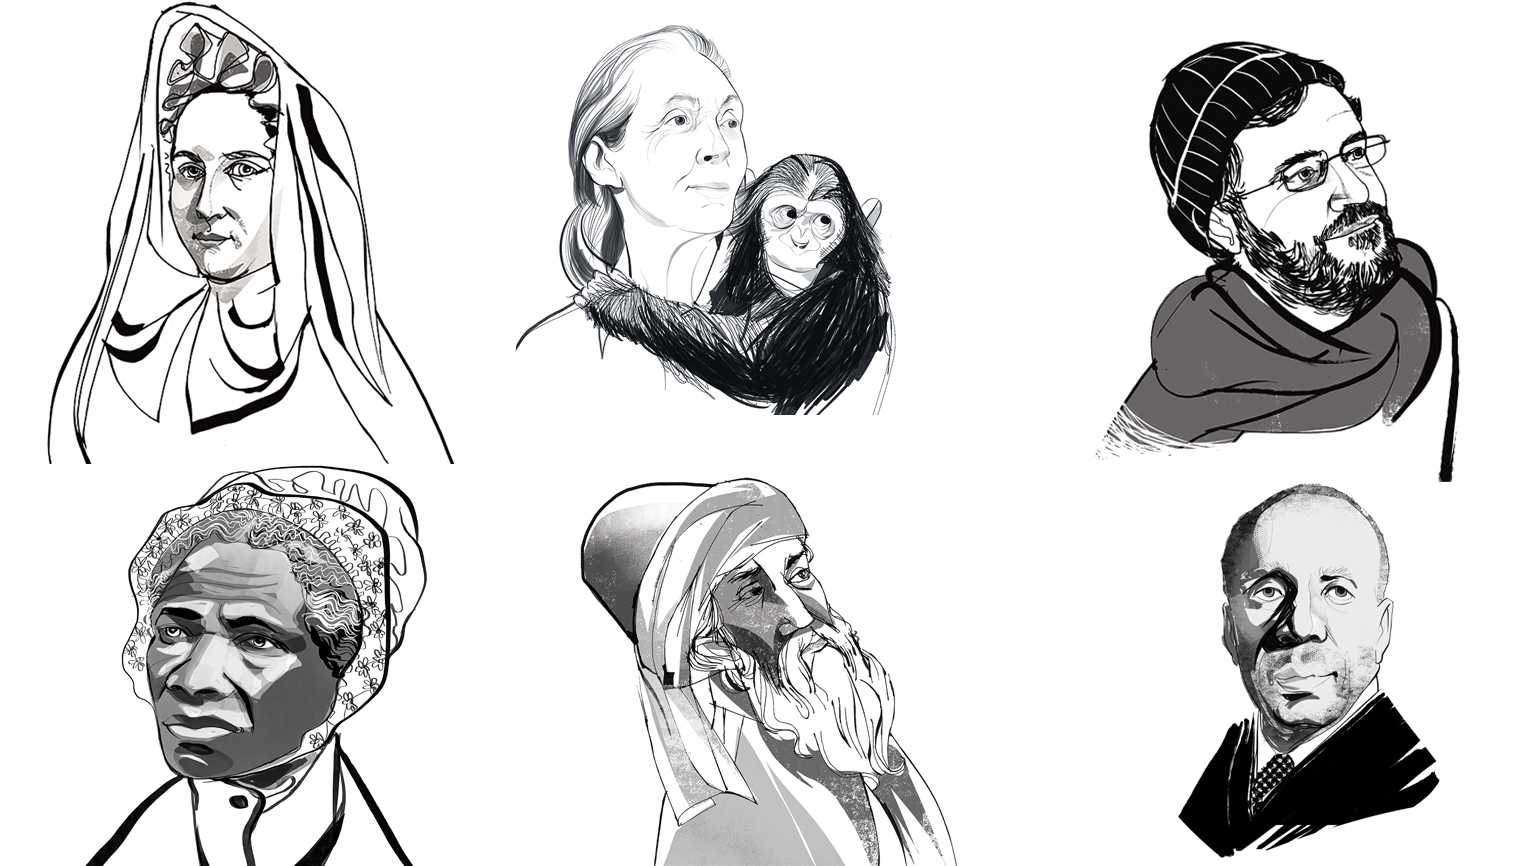 An artist's rendering of various mystics; Illustrations by John Jay Cabuay